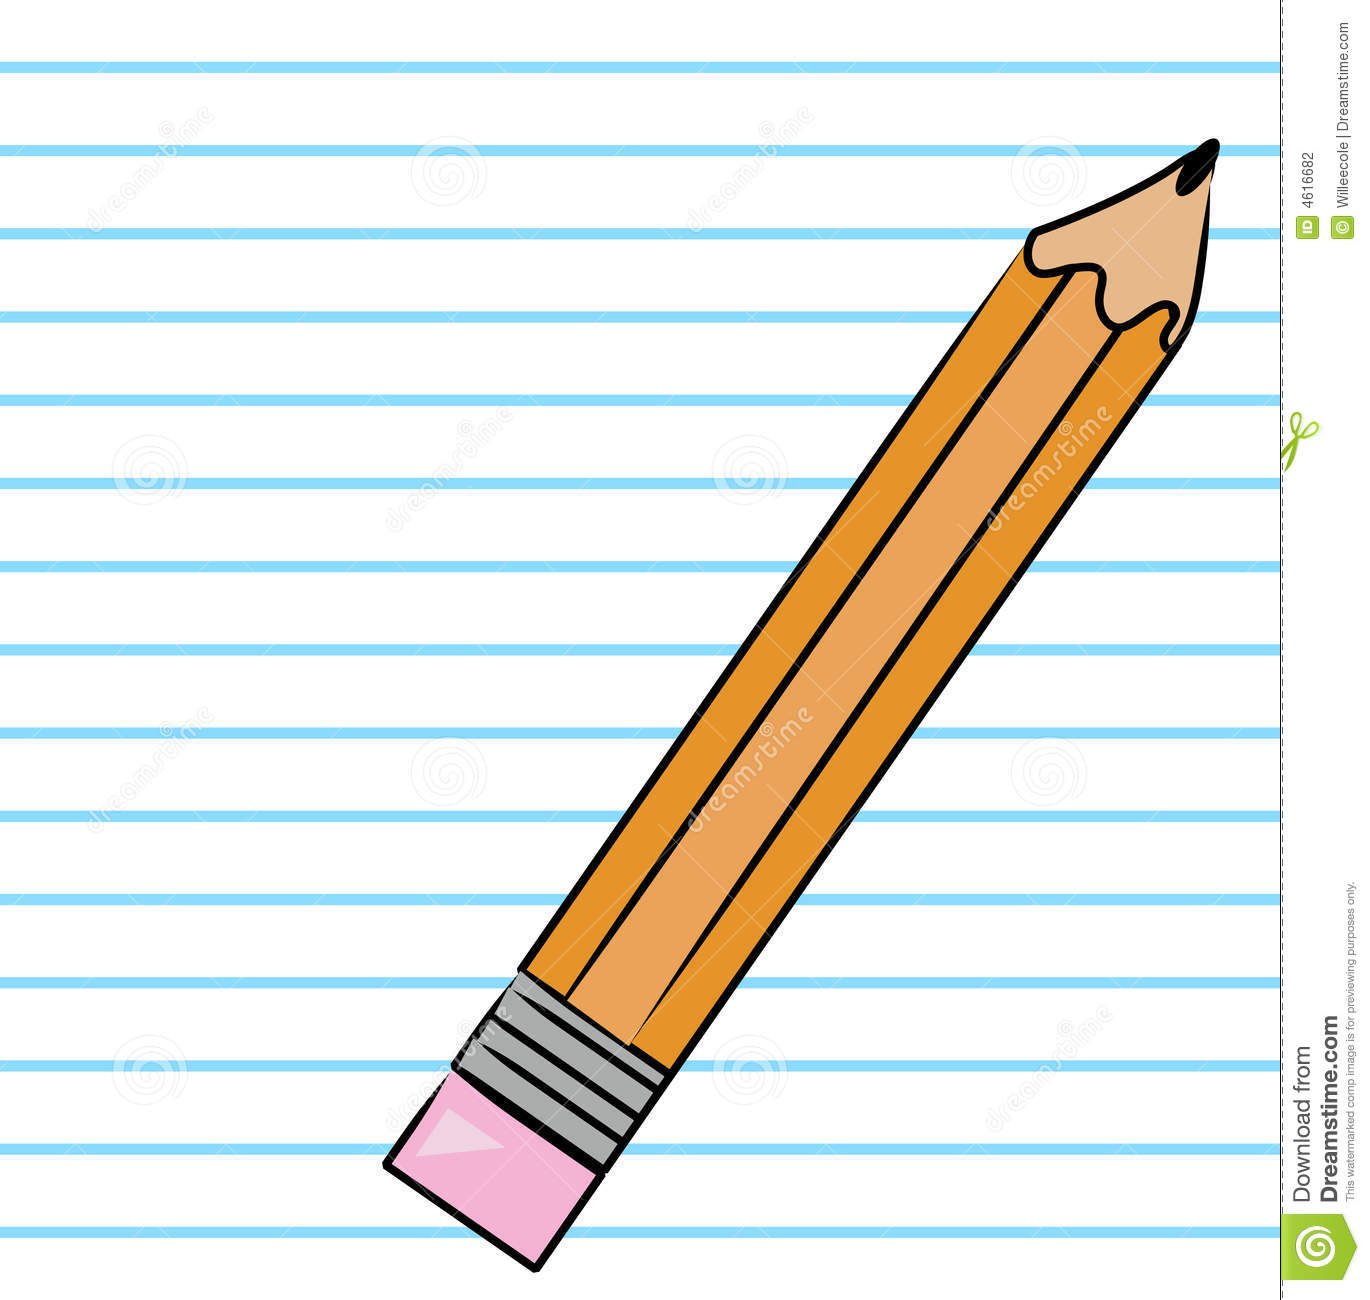 hight resolution of 1370x1300 paper and pencil clipart